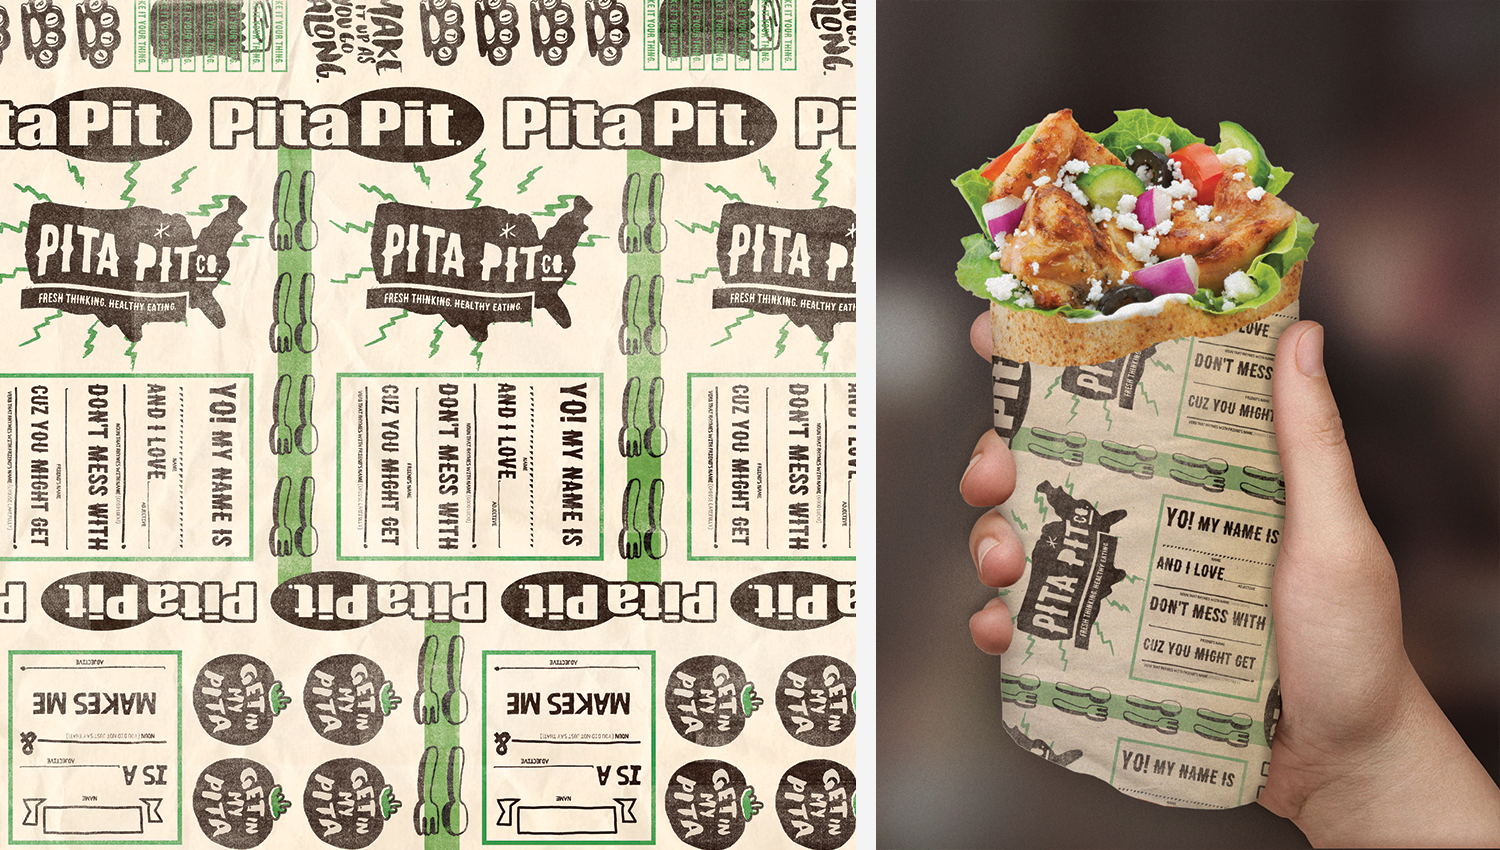 Pita wraps are in production now.